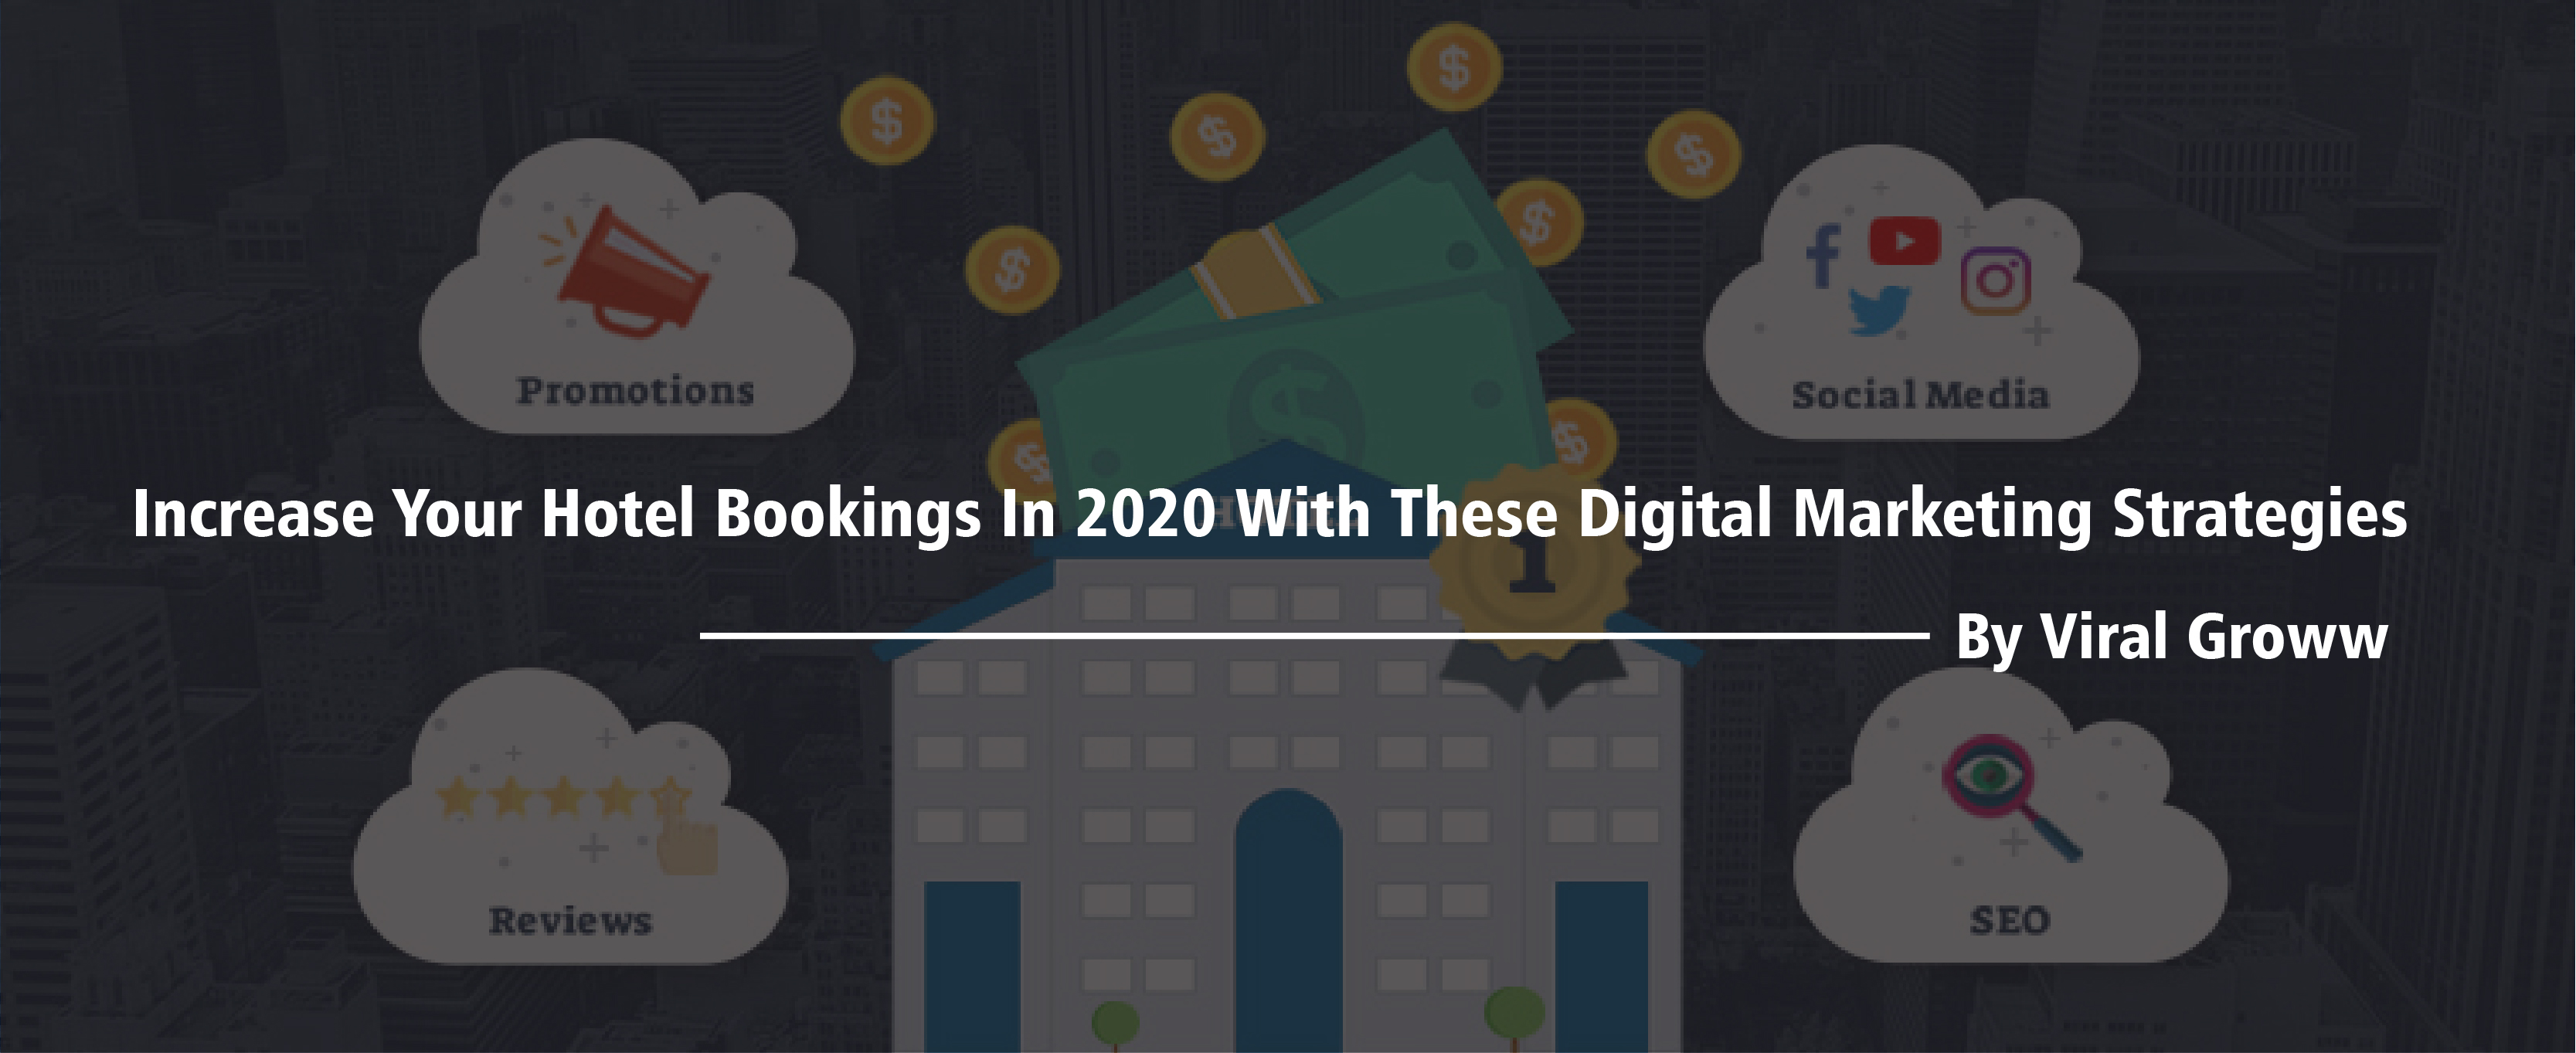 Increase Your Hotel Bookings in 2020 with these Digital Marketing Strategies